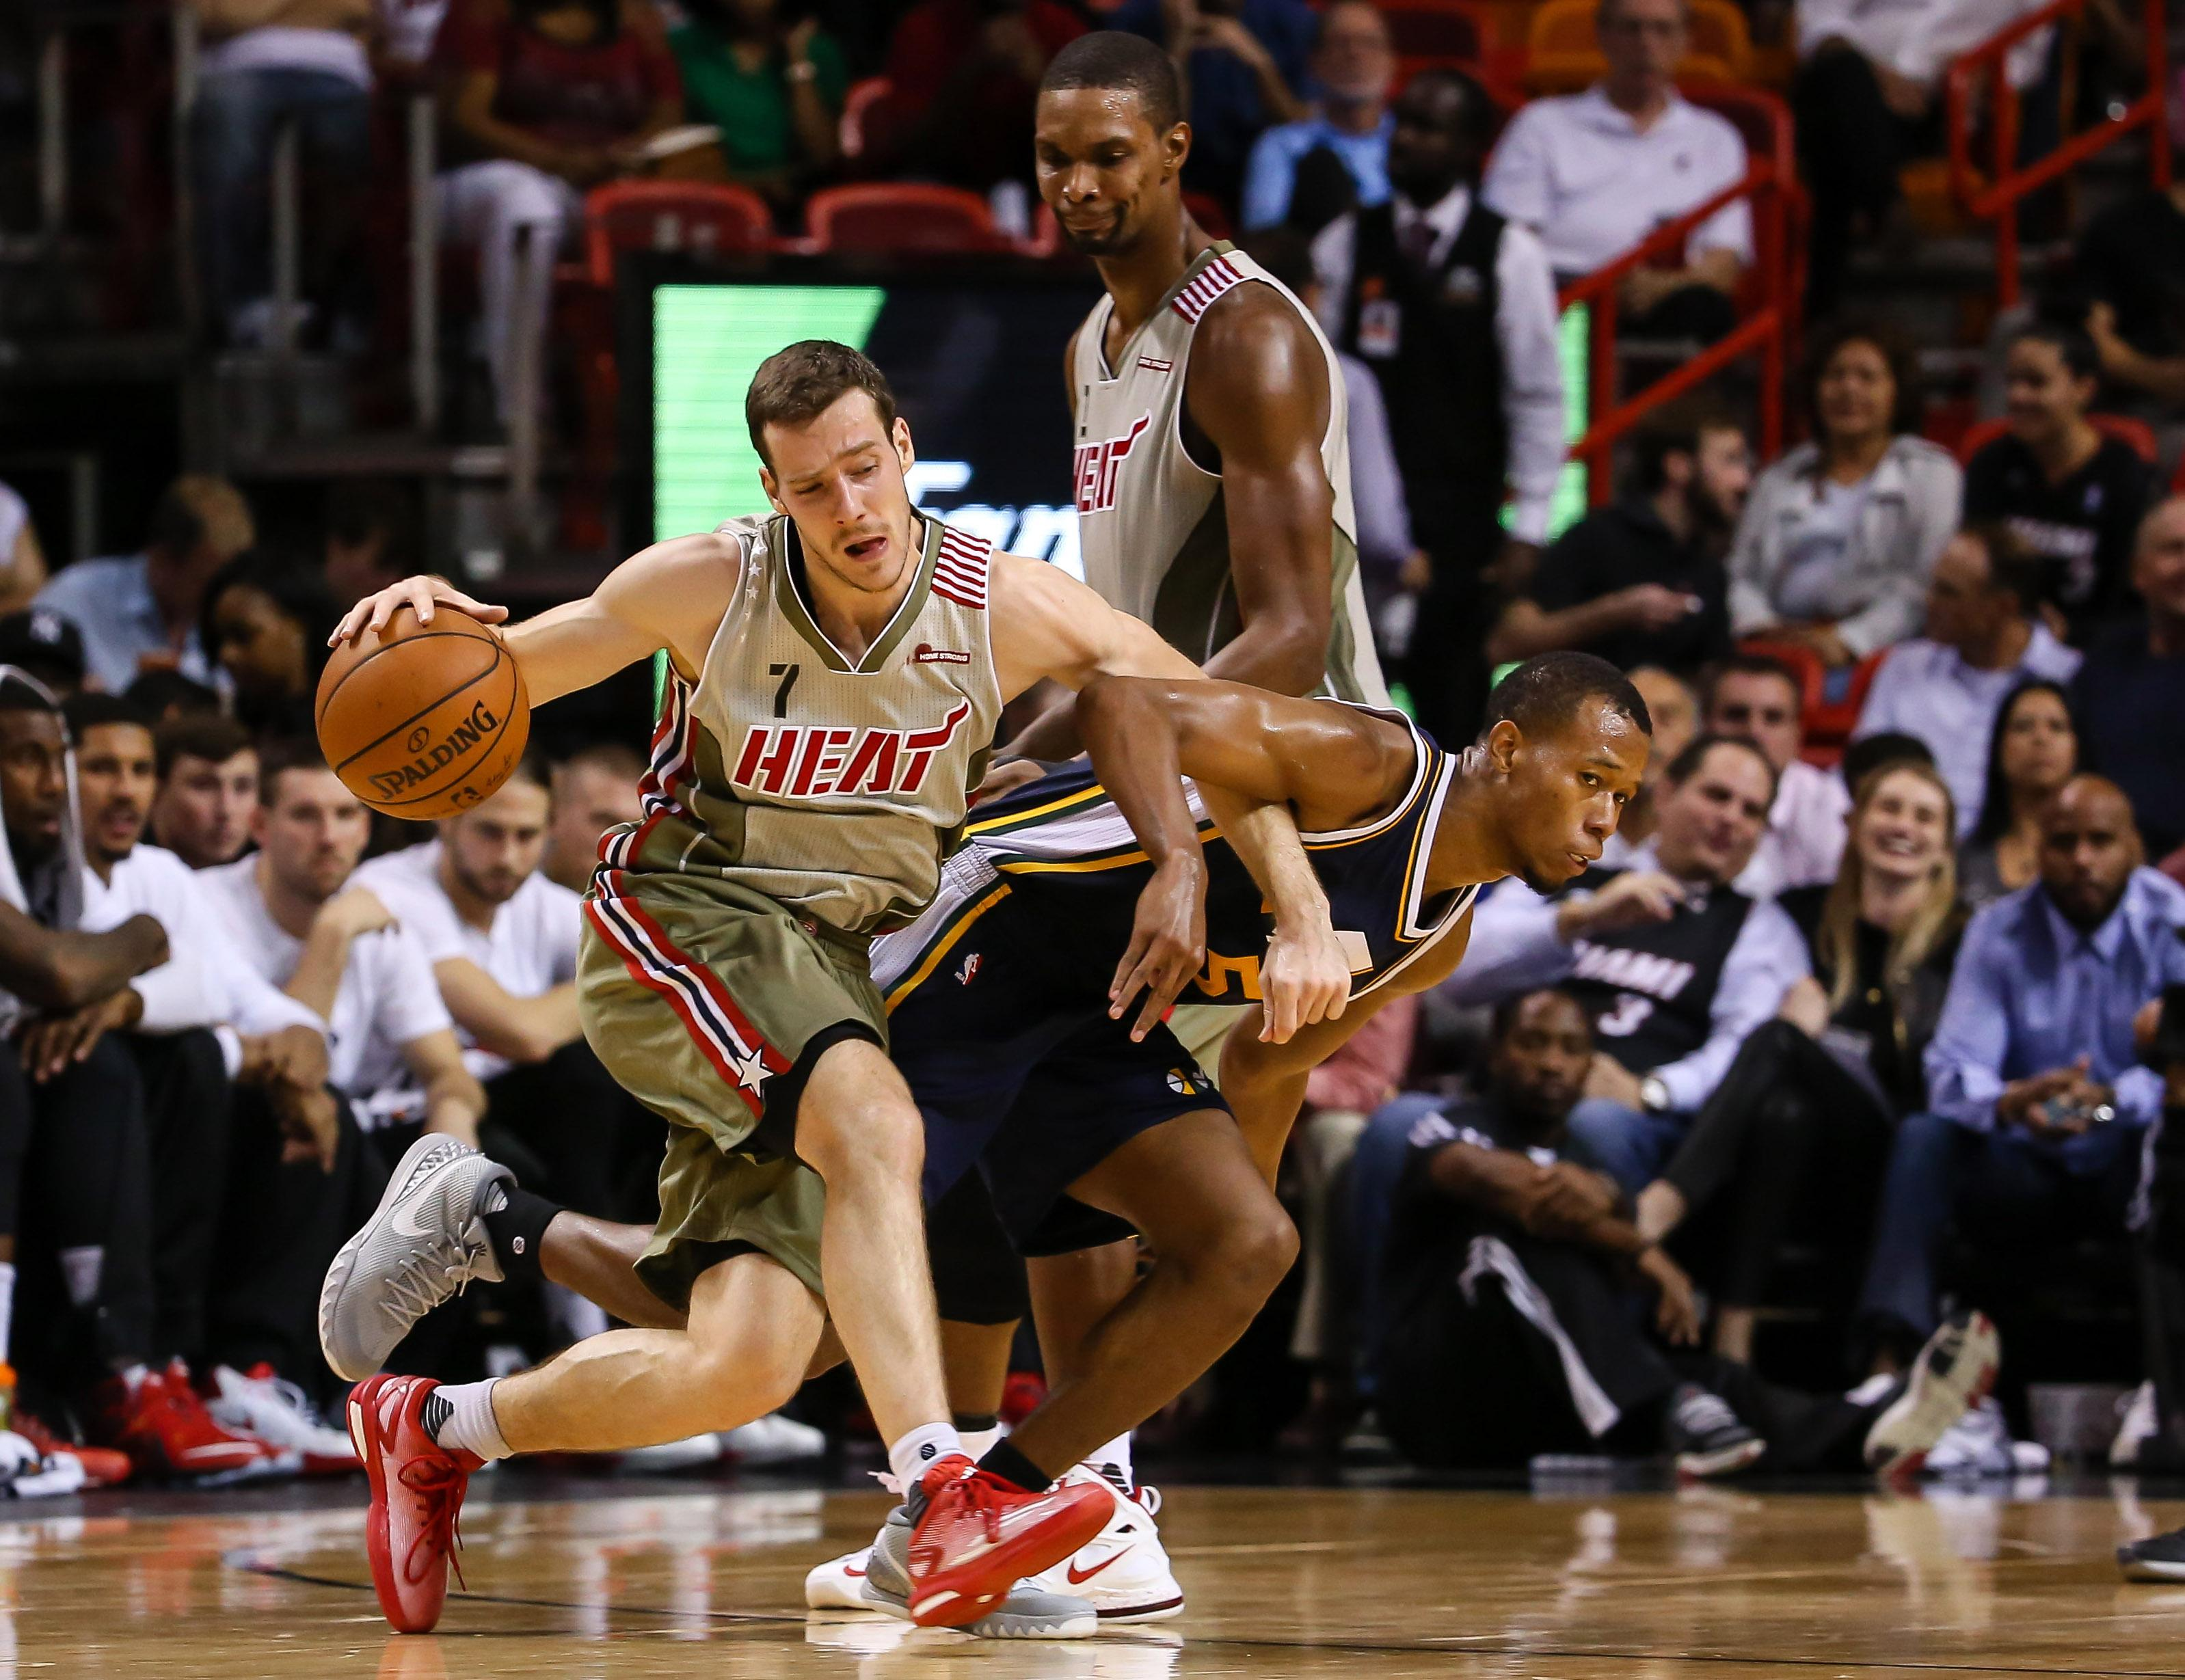 Miami Heat guard Goran Dragic